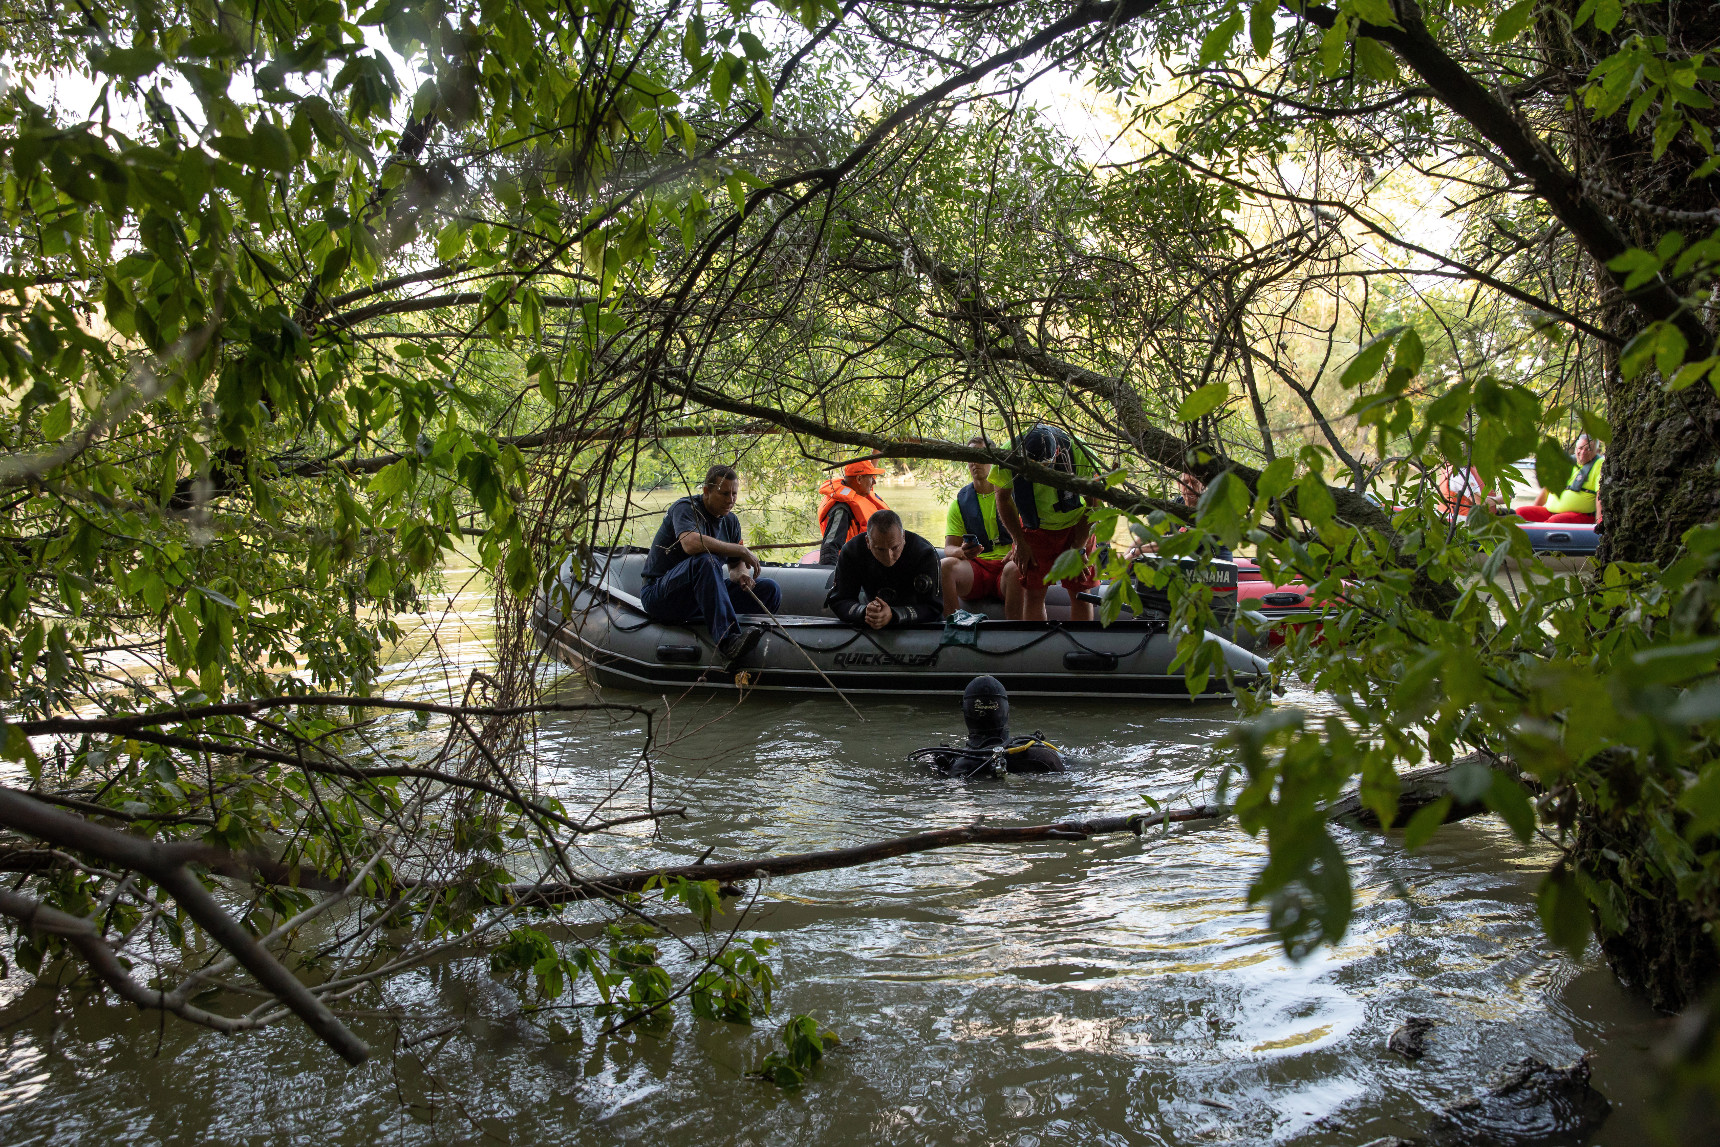 Video: Hungarian Police Search For Missing Hableány Passengers With 15 Boats